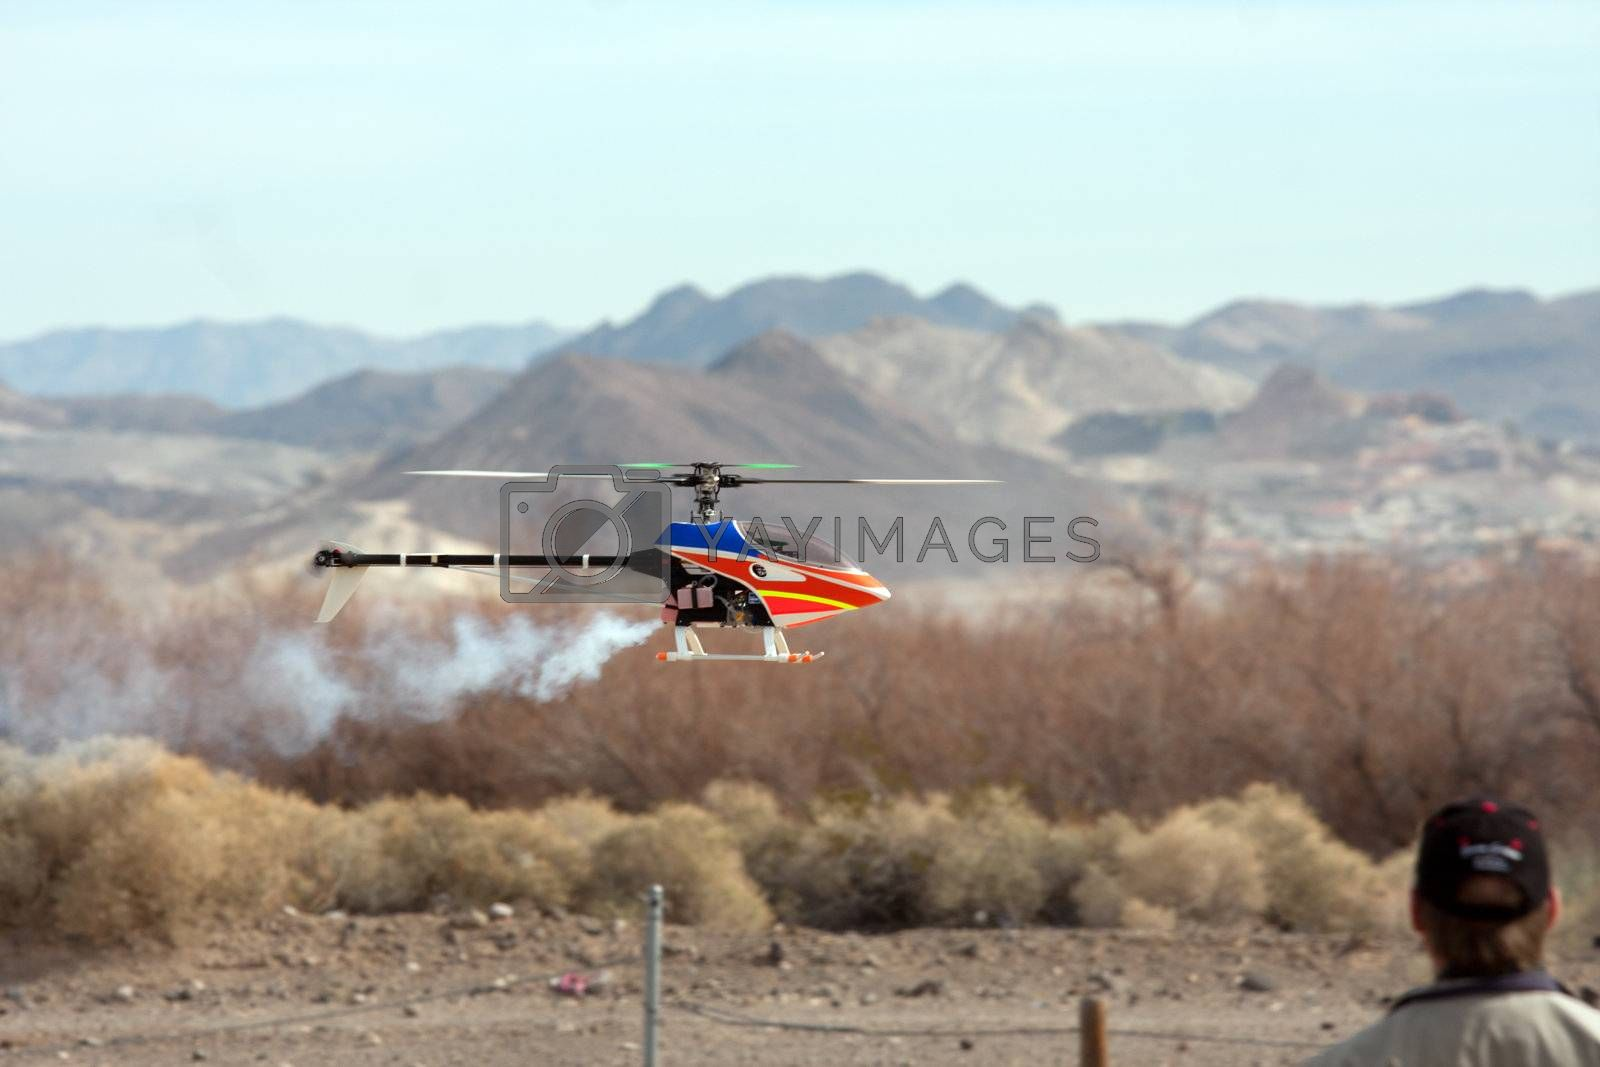 RC helicopter in flight in front of mountains